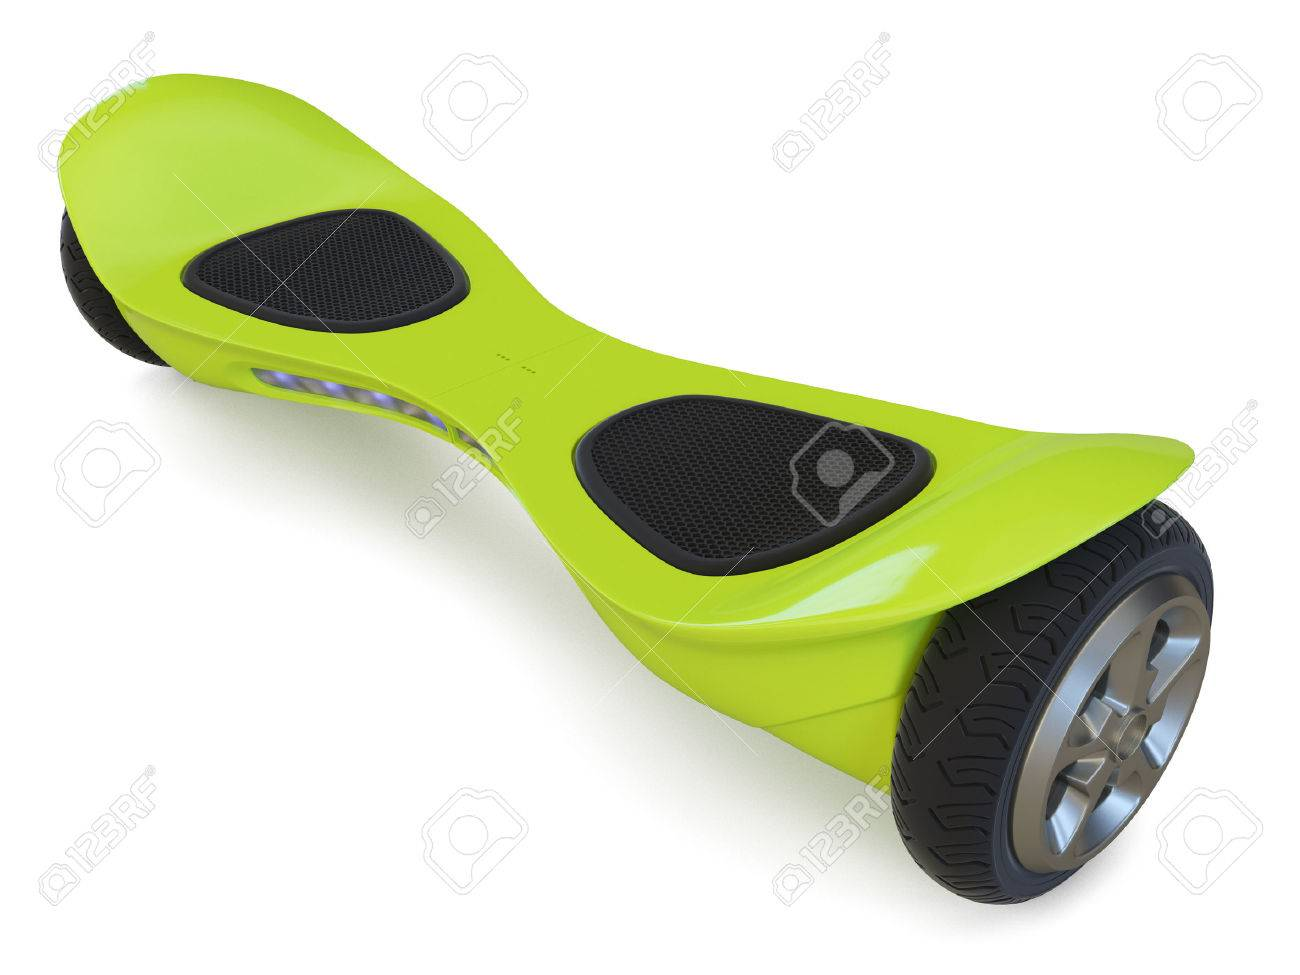 Hoverboard isolated on white background. 3D render Standard-Bild - 54499886